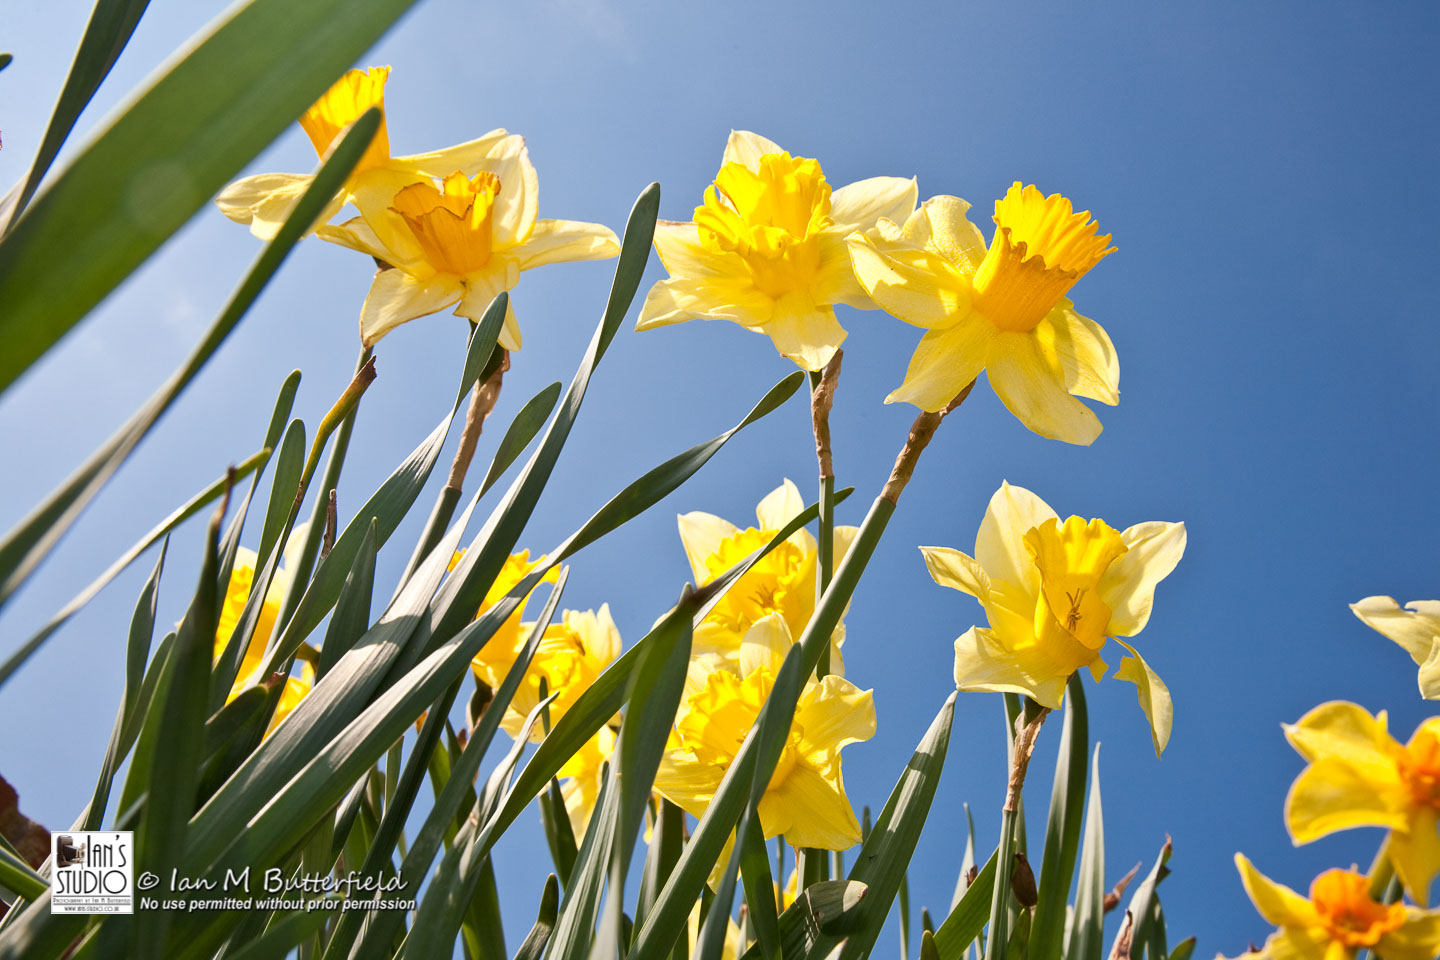 ACADEMY BITE: Flowers and Flowerscapes #7 – Daffodils at Bramall Hall